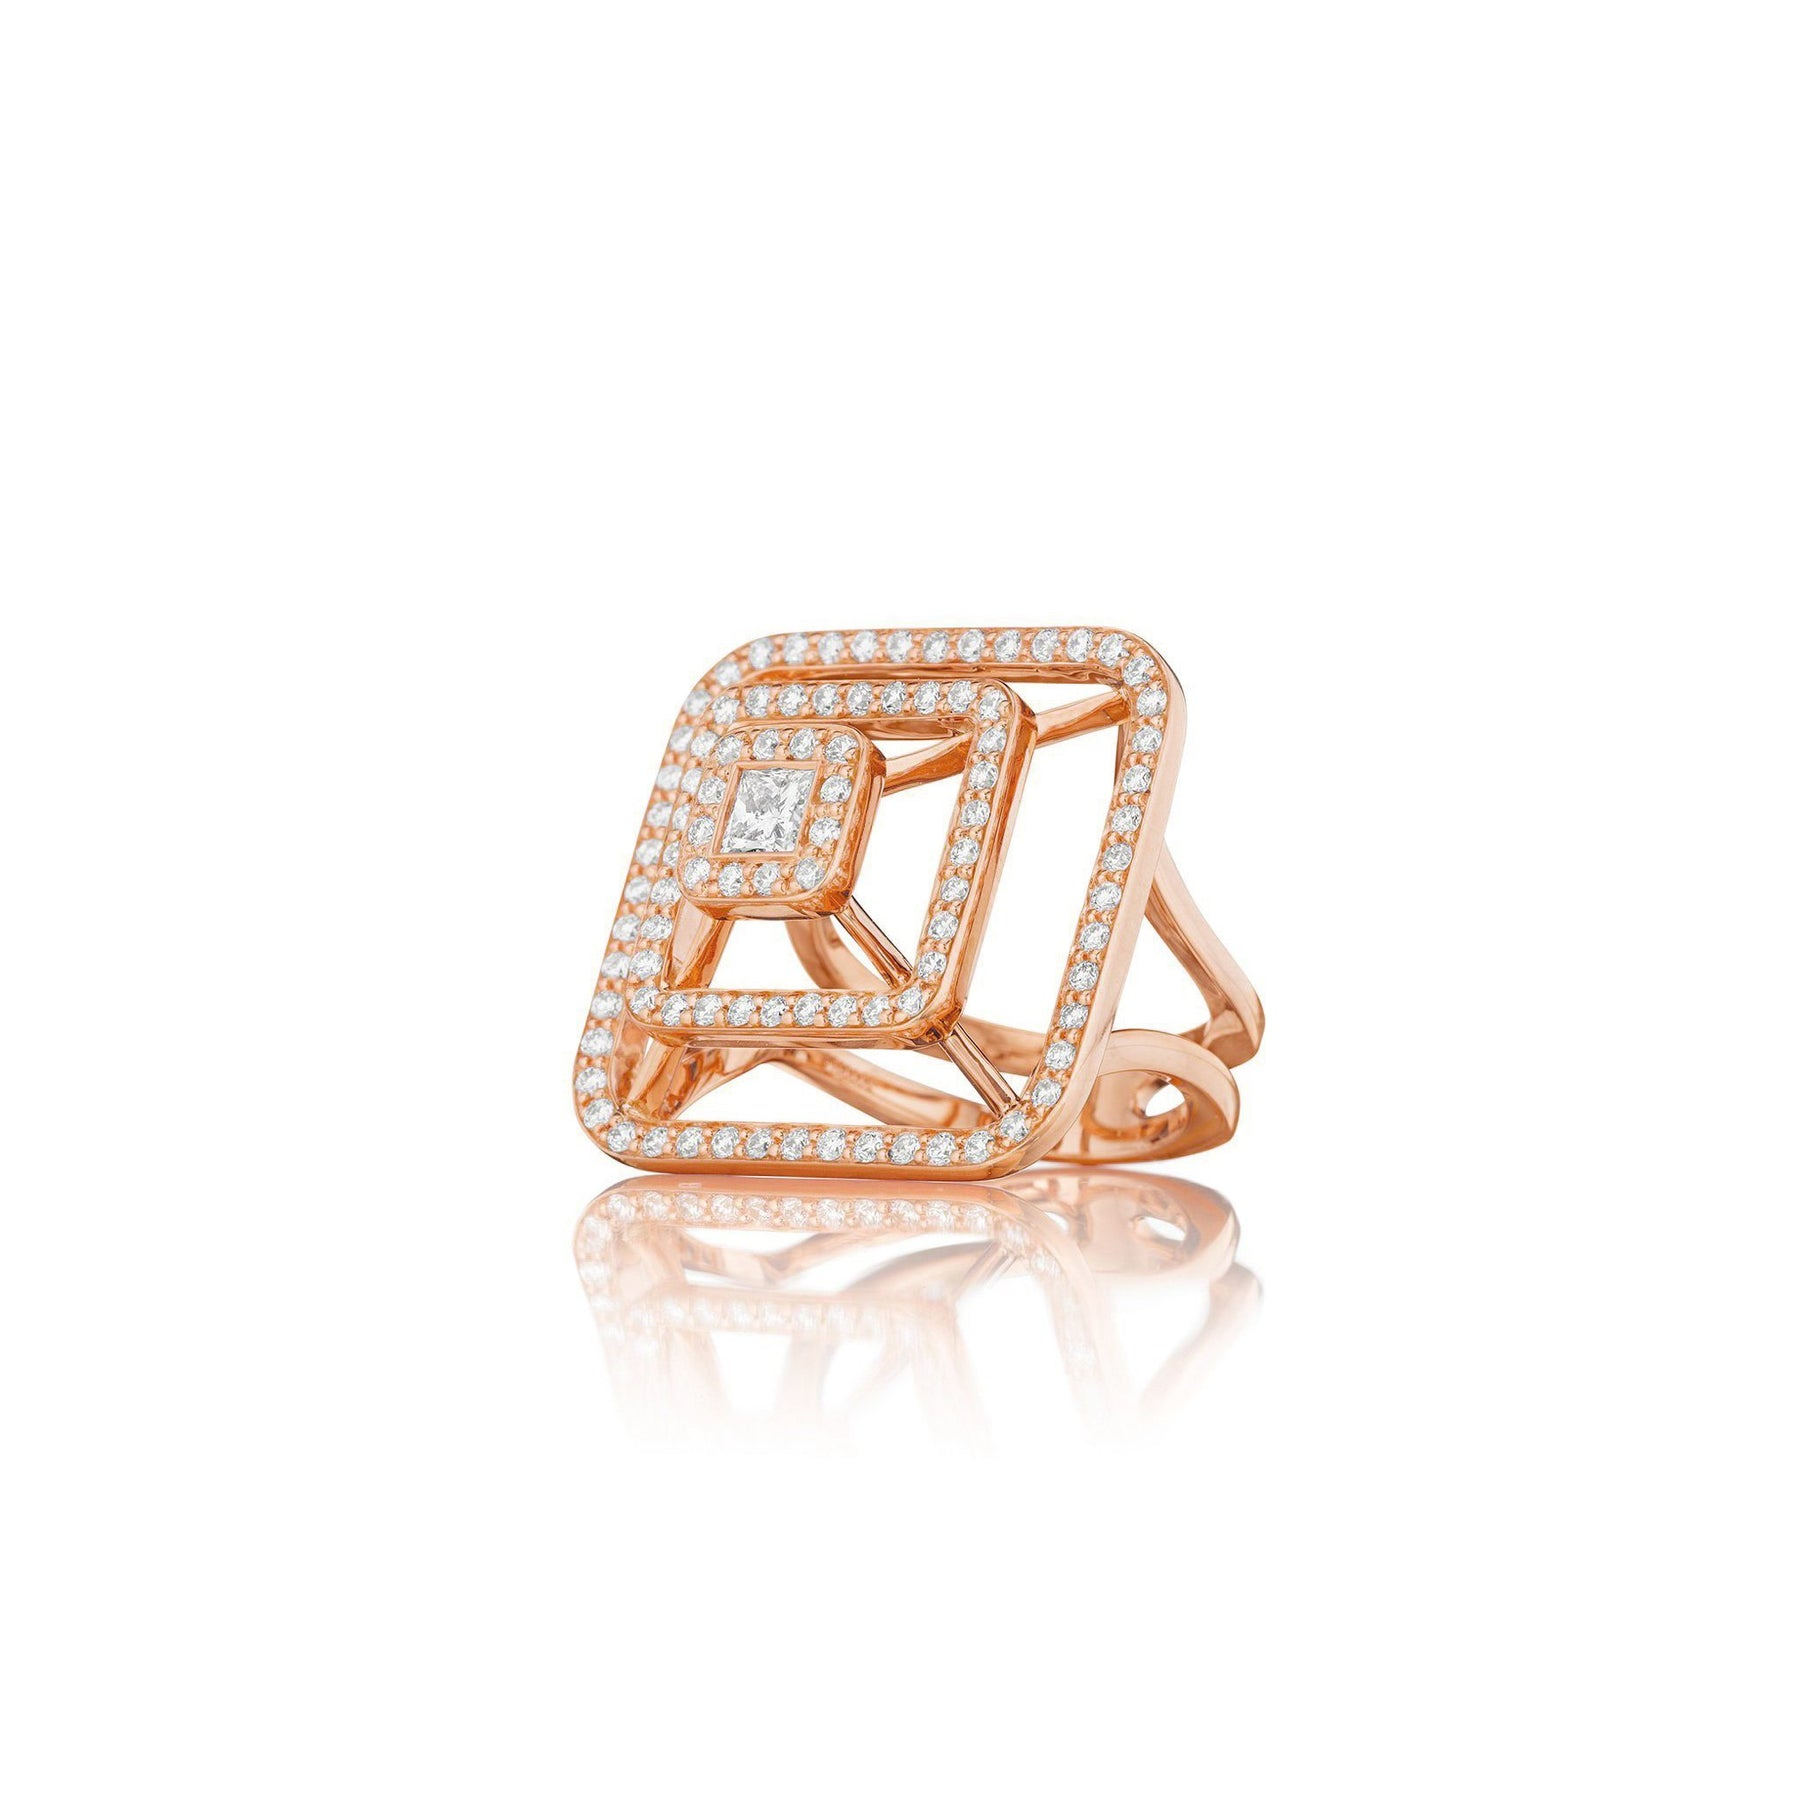 Mimi So Piece Pyramid Diamond Ring_18k Rose Gold